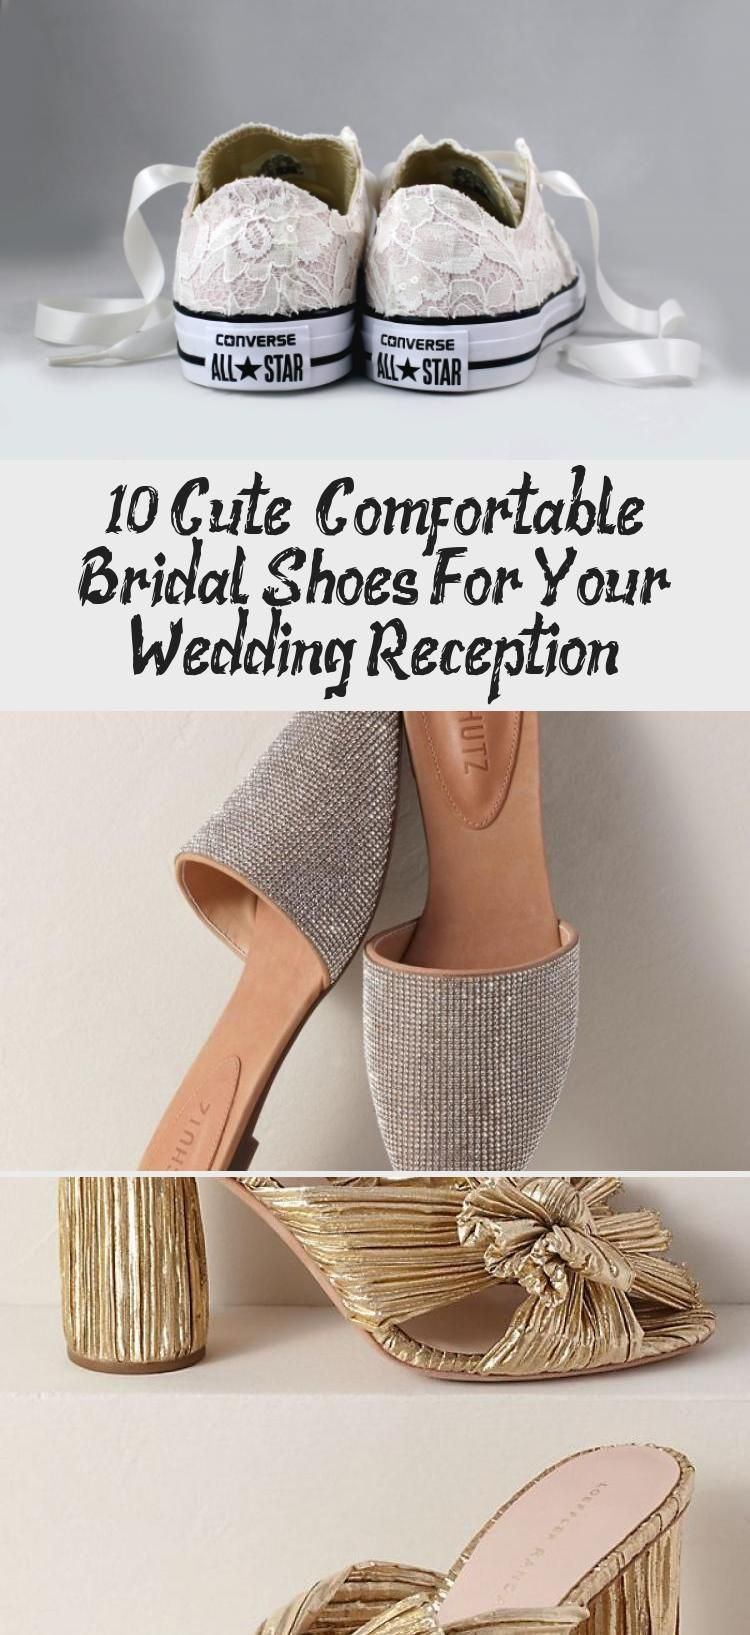 10 Cute + Comfortable Bridal Shoes For Your Wedding Reception - Shoes ,  #badgleymischkaBridalShoes #Bridal #BridalShoesblush #BridalShoeschampagne #BridalShoeselegant #BridalShoesindian #BridalShoesjimmychoo #BridalShoeslace #BridalShoespeeptoe #BridalShoeswithdress #Comfortable #Cute #Reception #Shoes #valentinoBridalShoes #verawangBridalShoes #Wedding